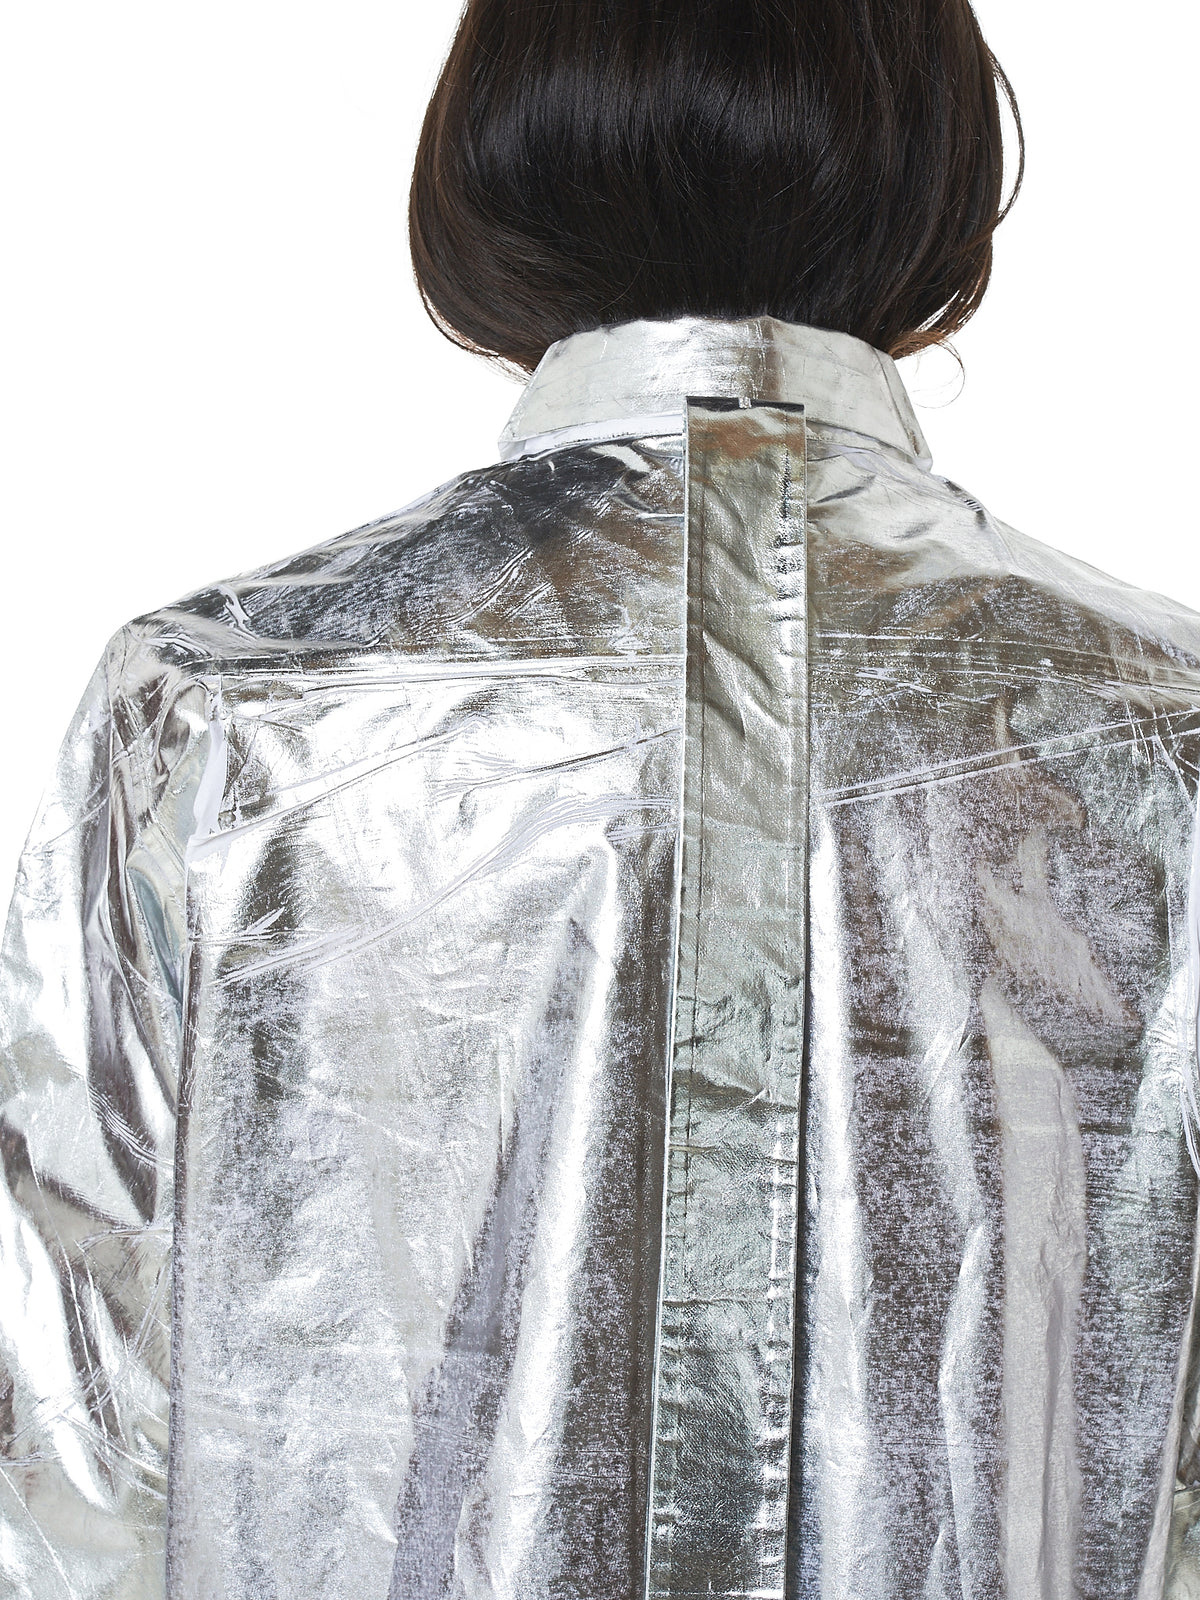 MM6 Maison Margiela Metallic Shirt - Hlorenzo Detail 2